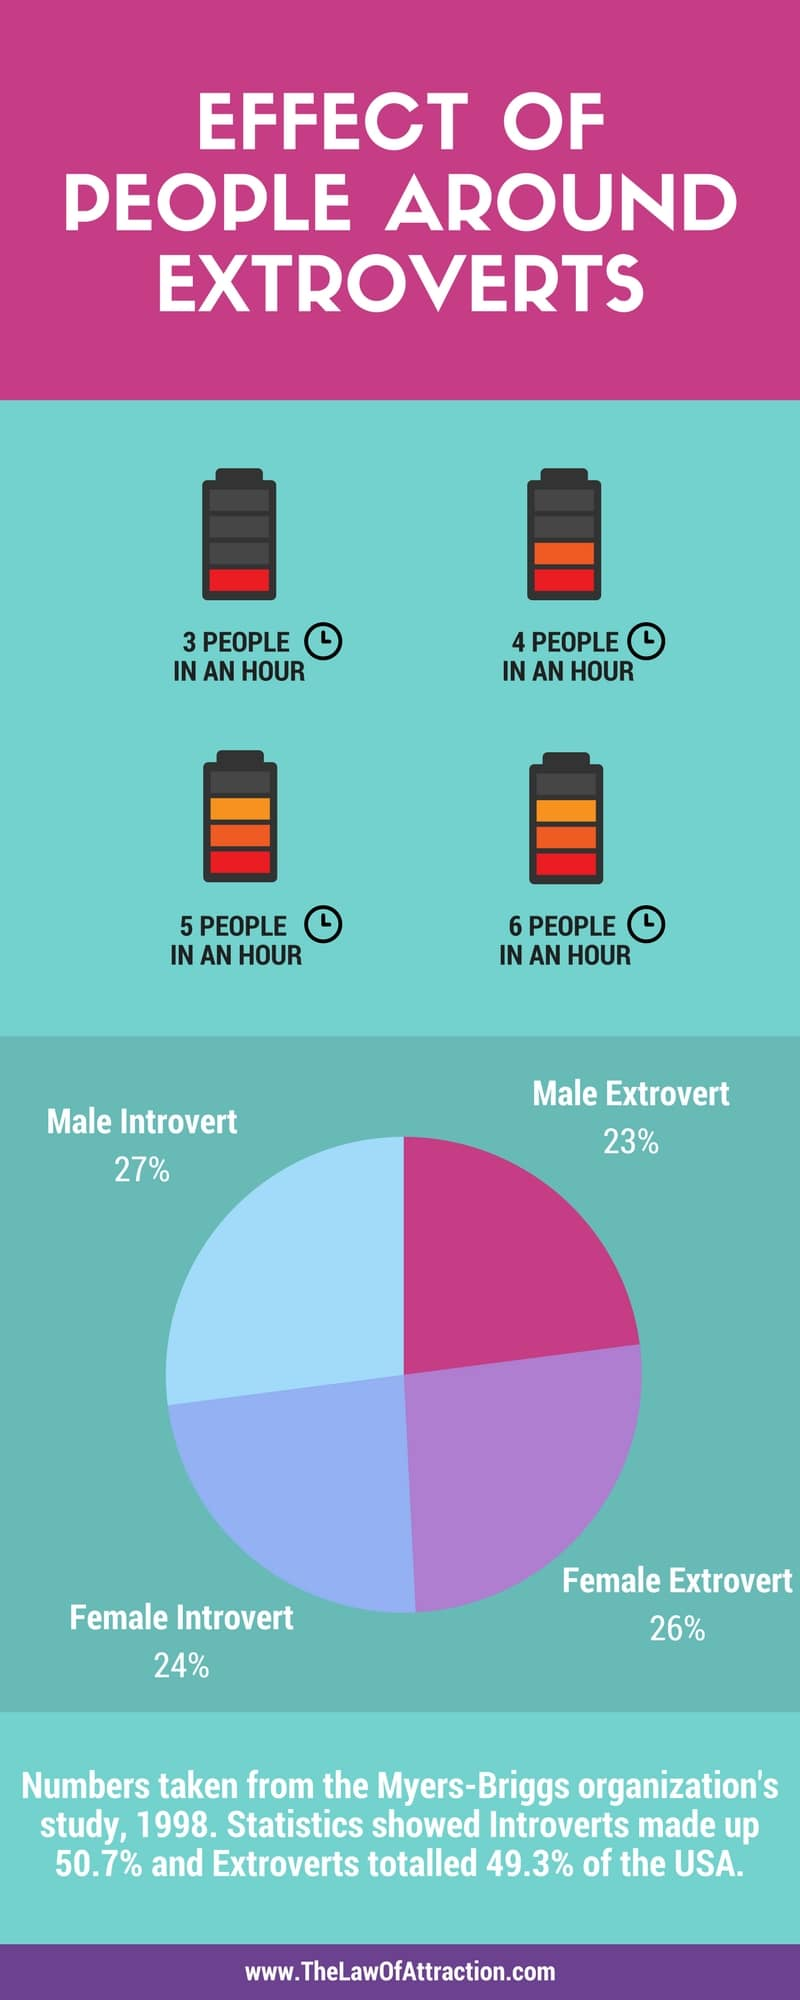 EFFECT OF PEOPLE AROUND EXTROVERTS